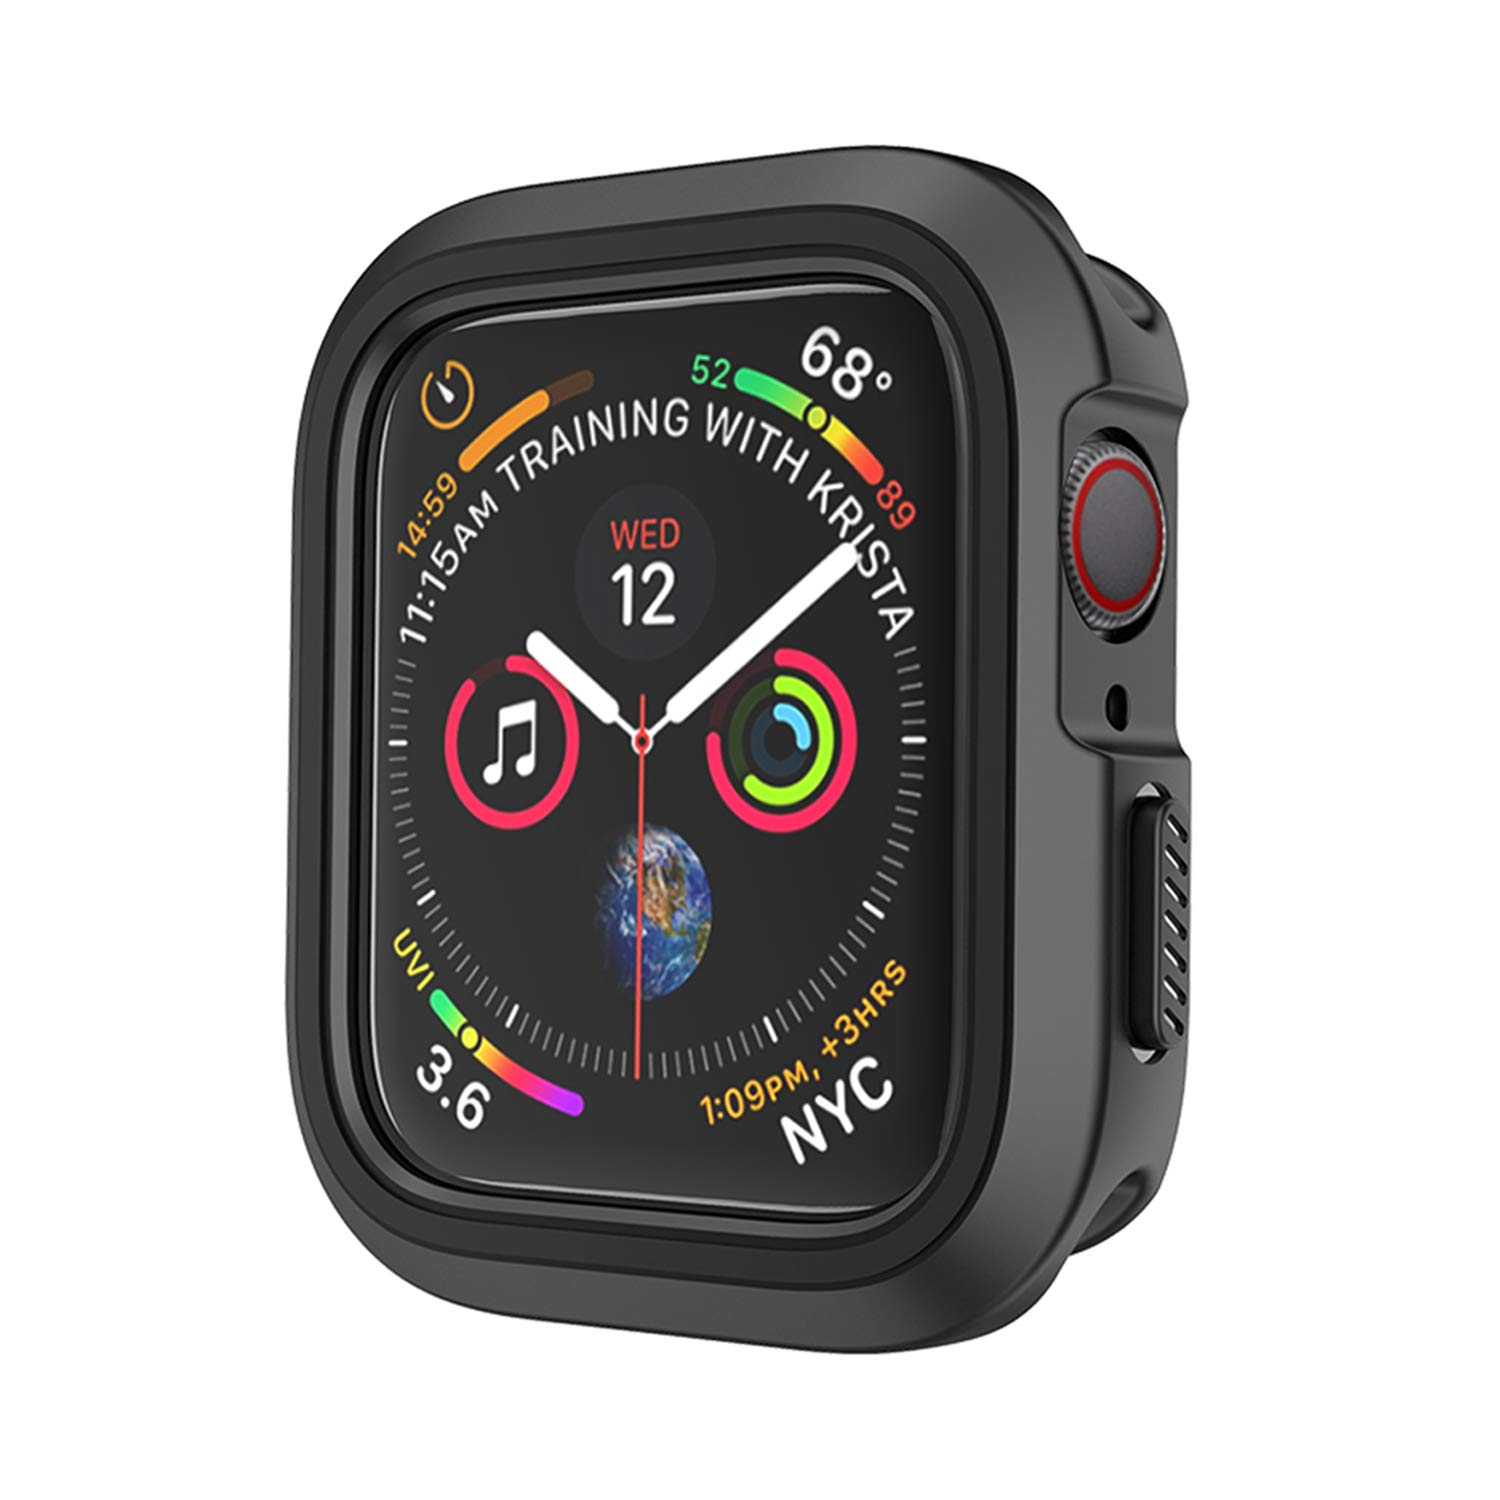 Compatible Apple Watch Case 44mm Series 4 Series 5, Shockproof and Shatter-Resistant Protective Bumper Cover iwatch Case, Black